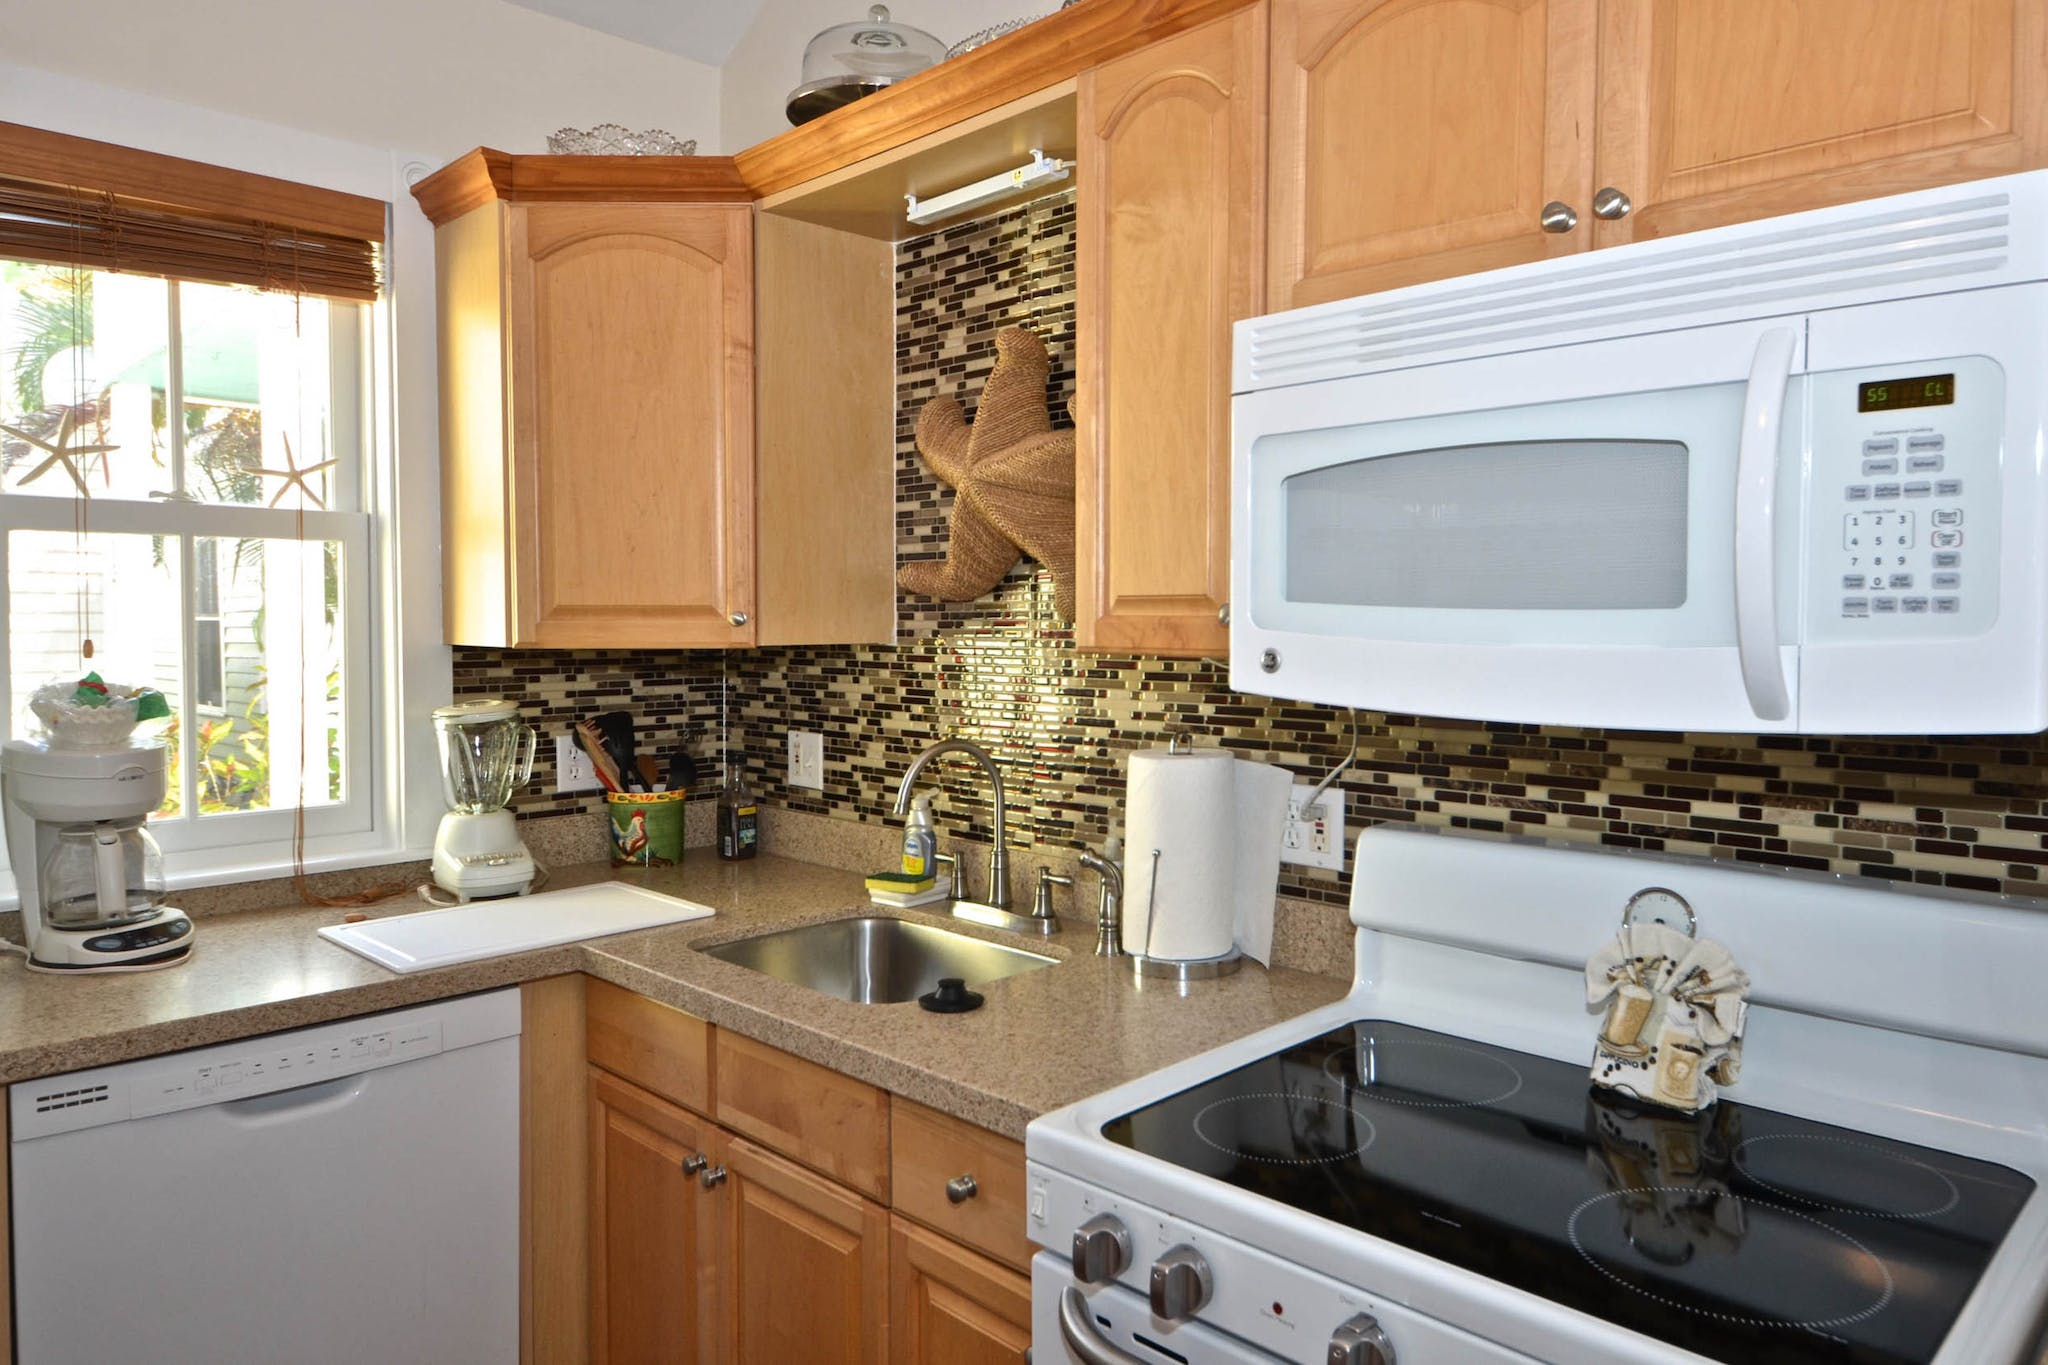 RENT Sunshine House - New Monthly Rental! | Key West Vacation Rental